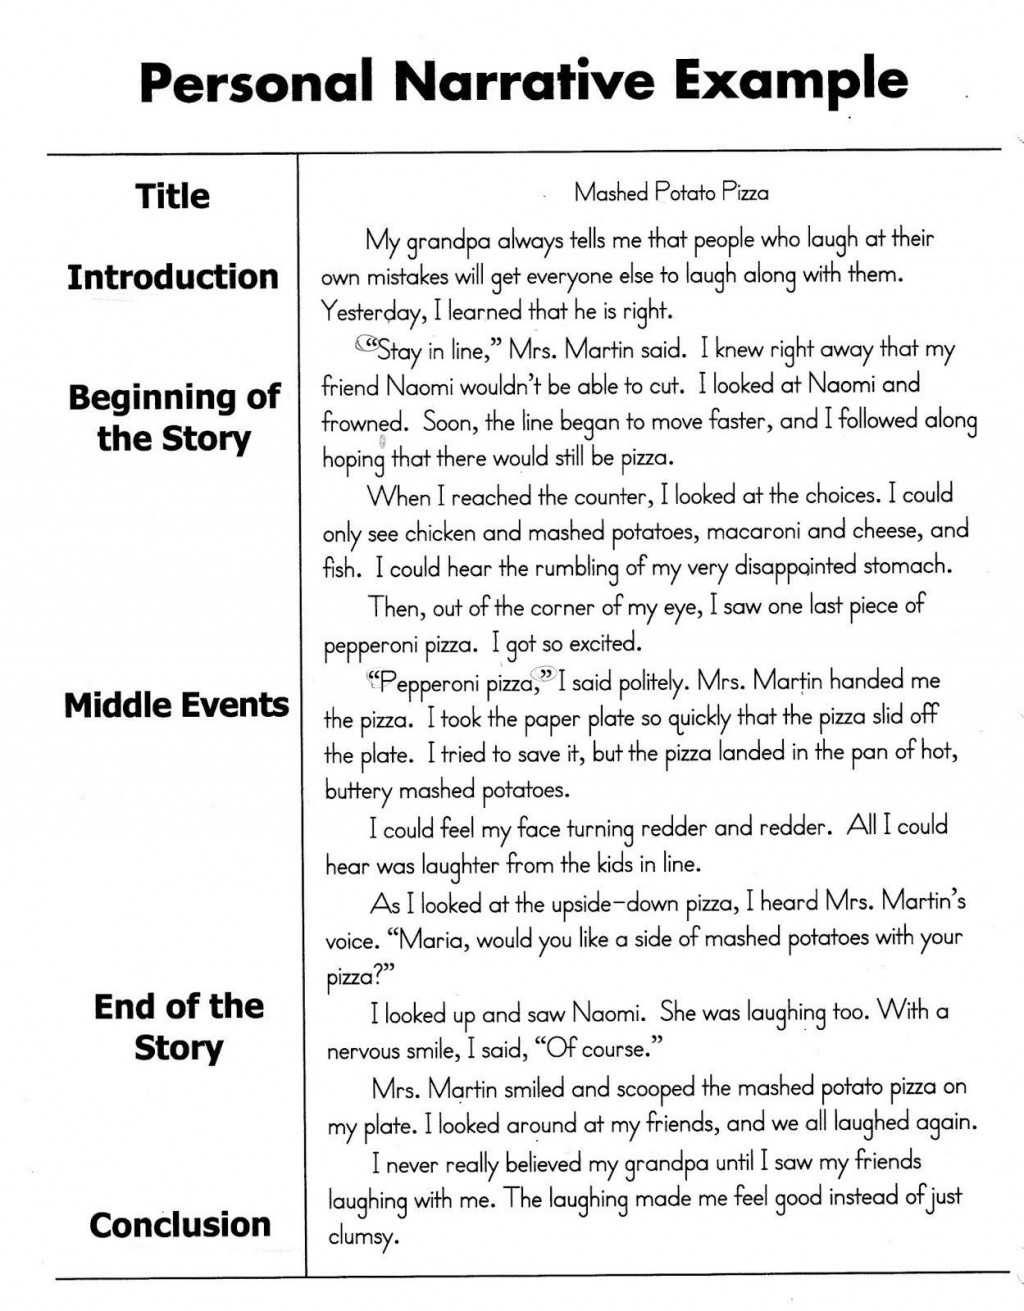 000 Unusual Personal Narrative Essay Inspiration  Structure Sample High School PromptLarge